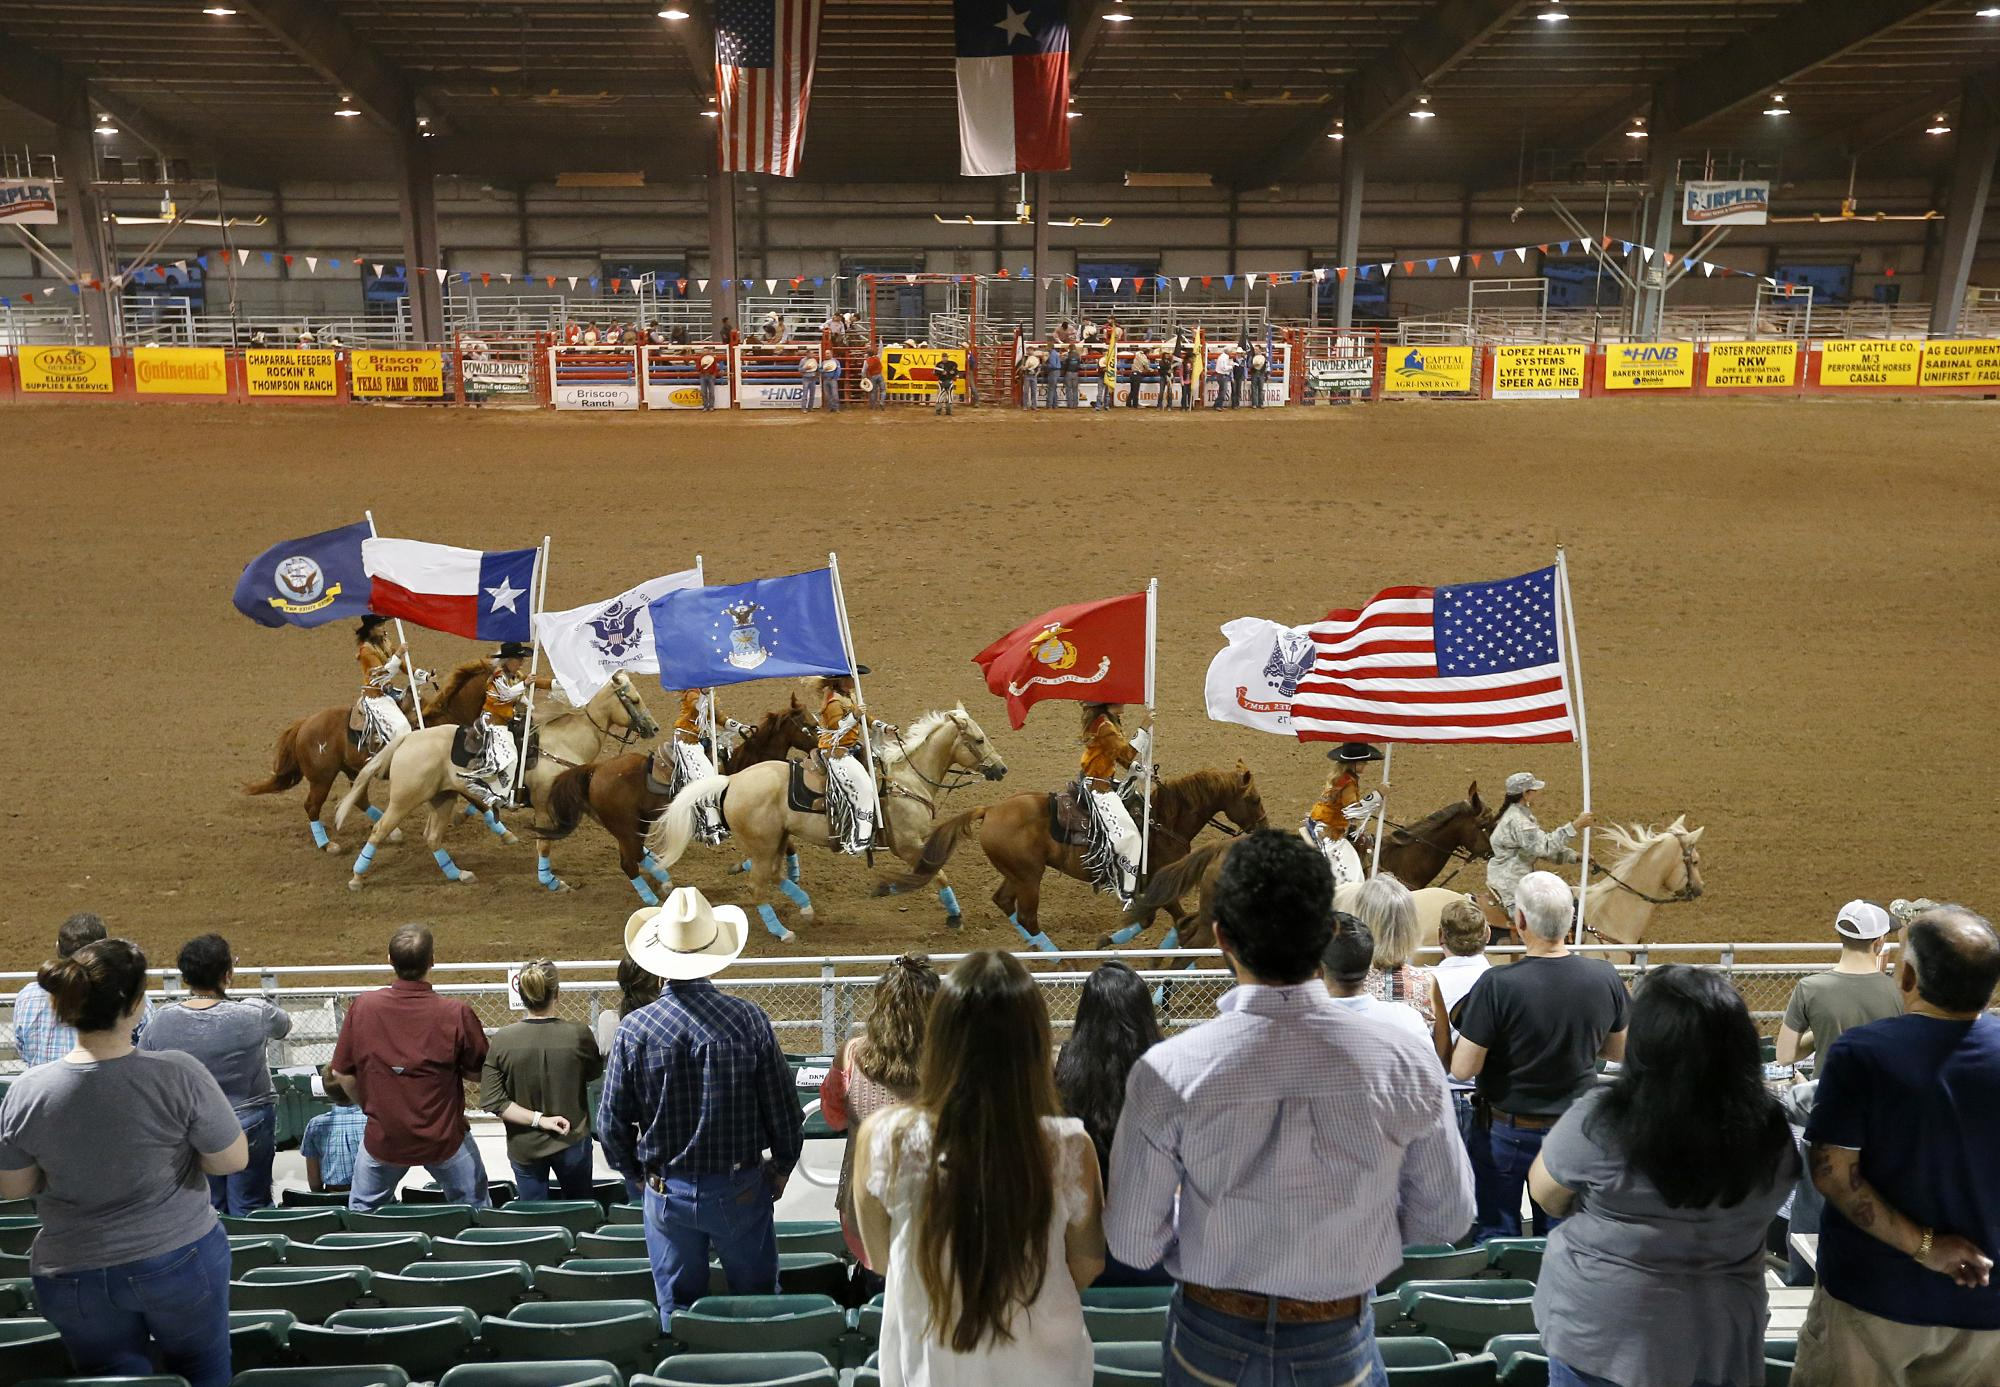 Scholarship rodeo: Archaic sport embraces realism